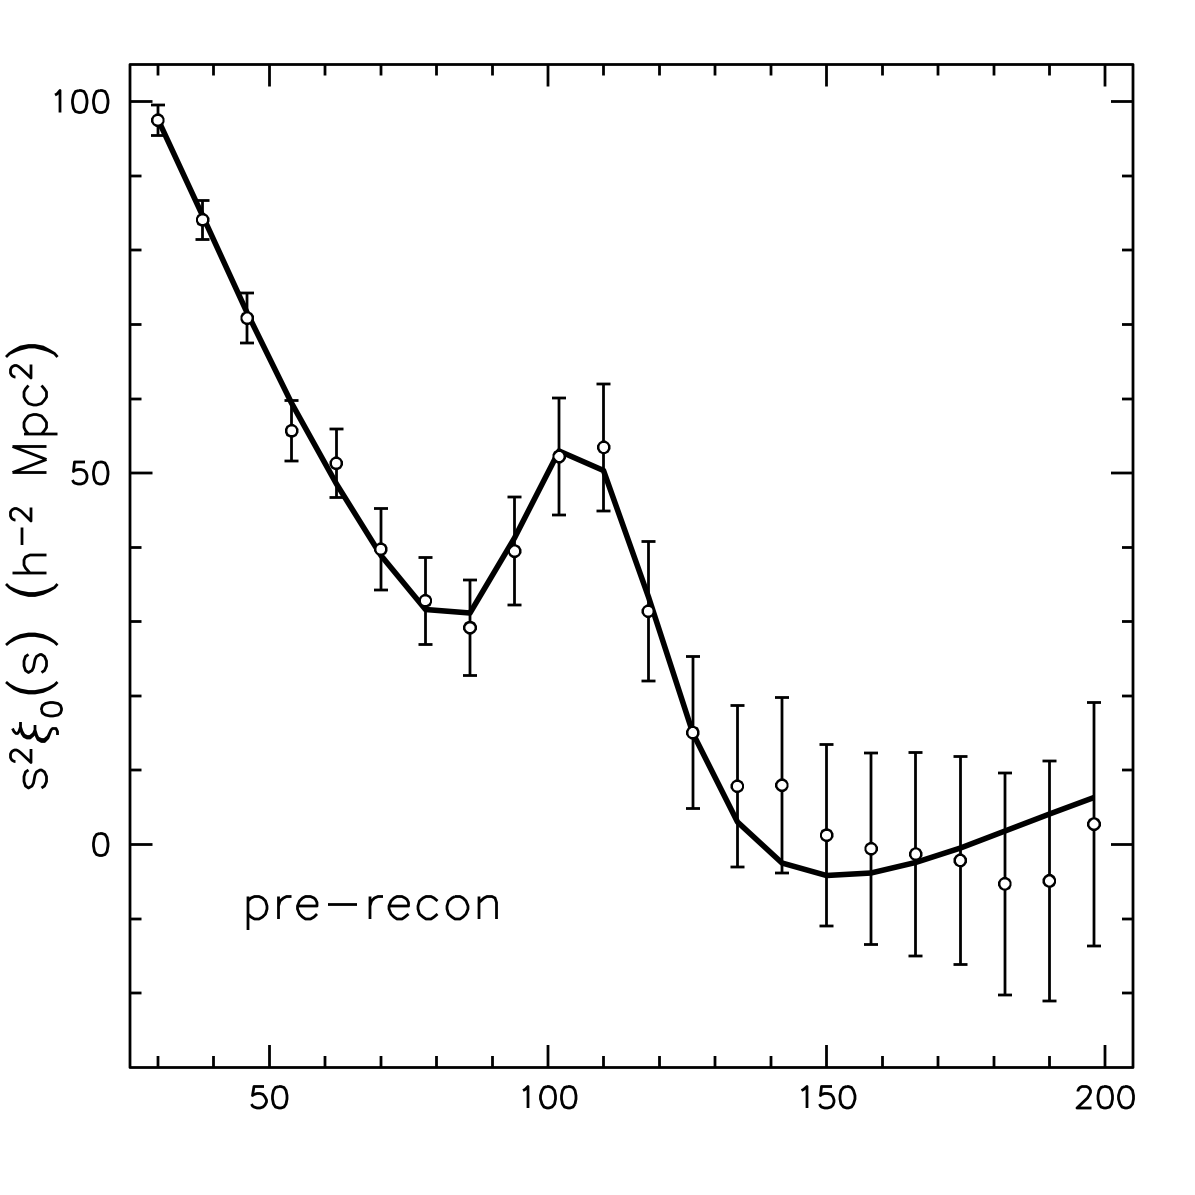 DR11 CMASS pre-reconstruction correlation function